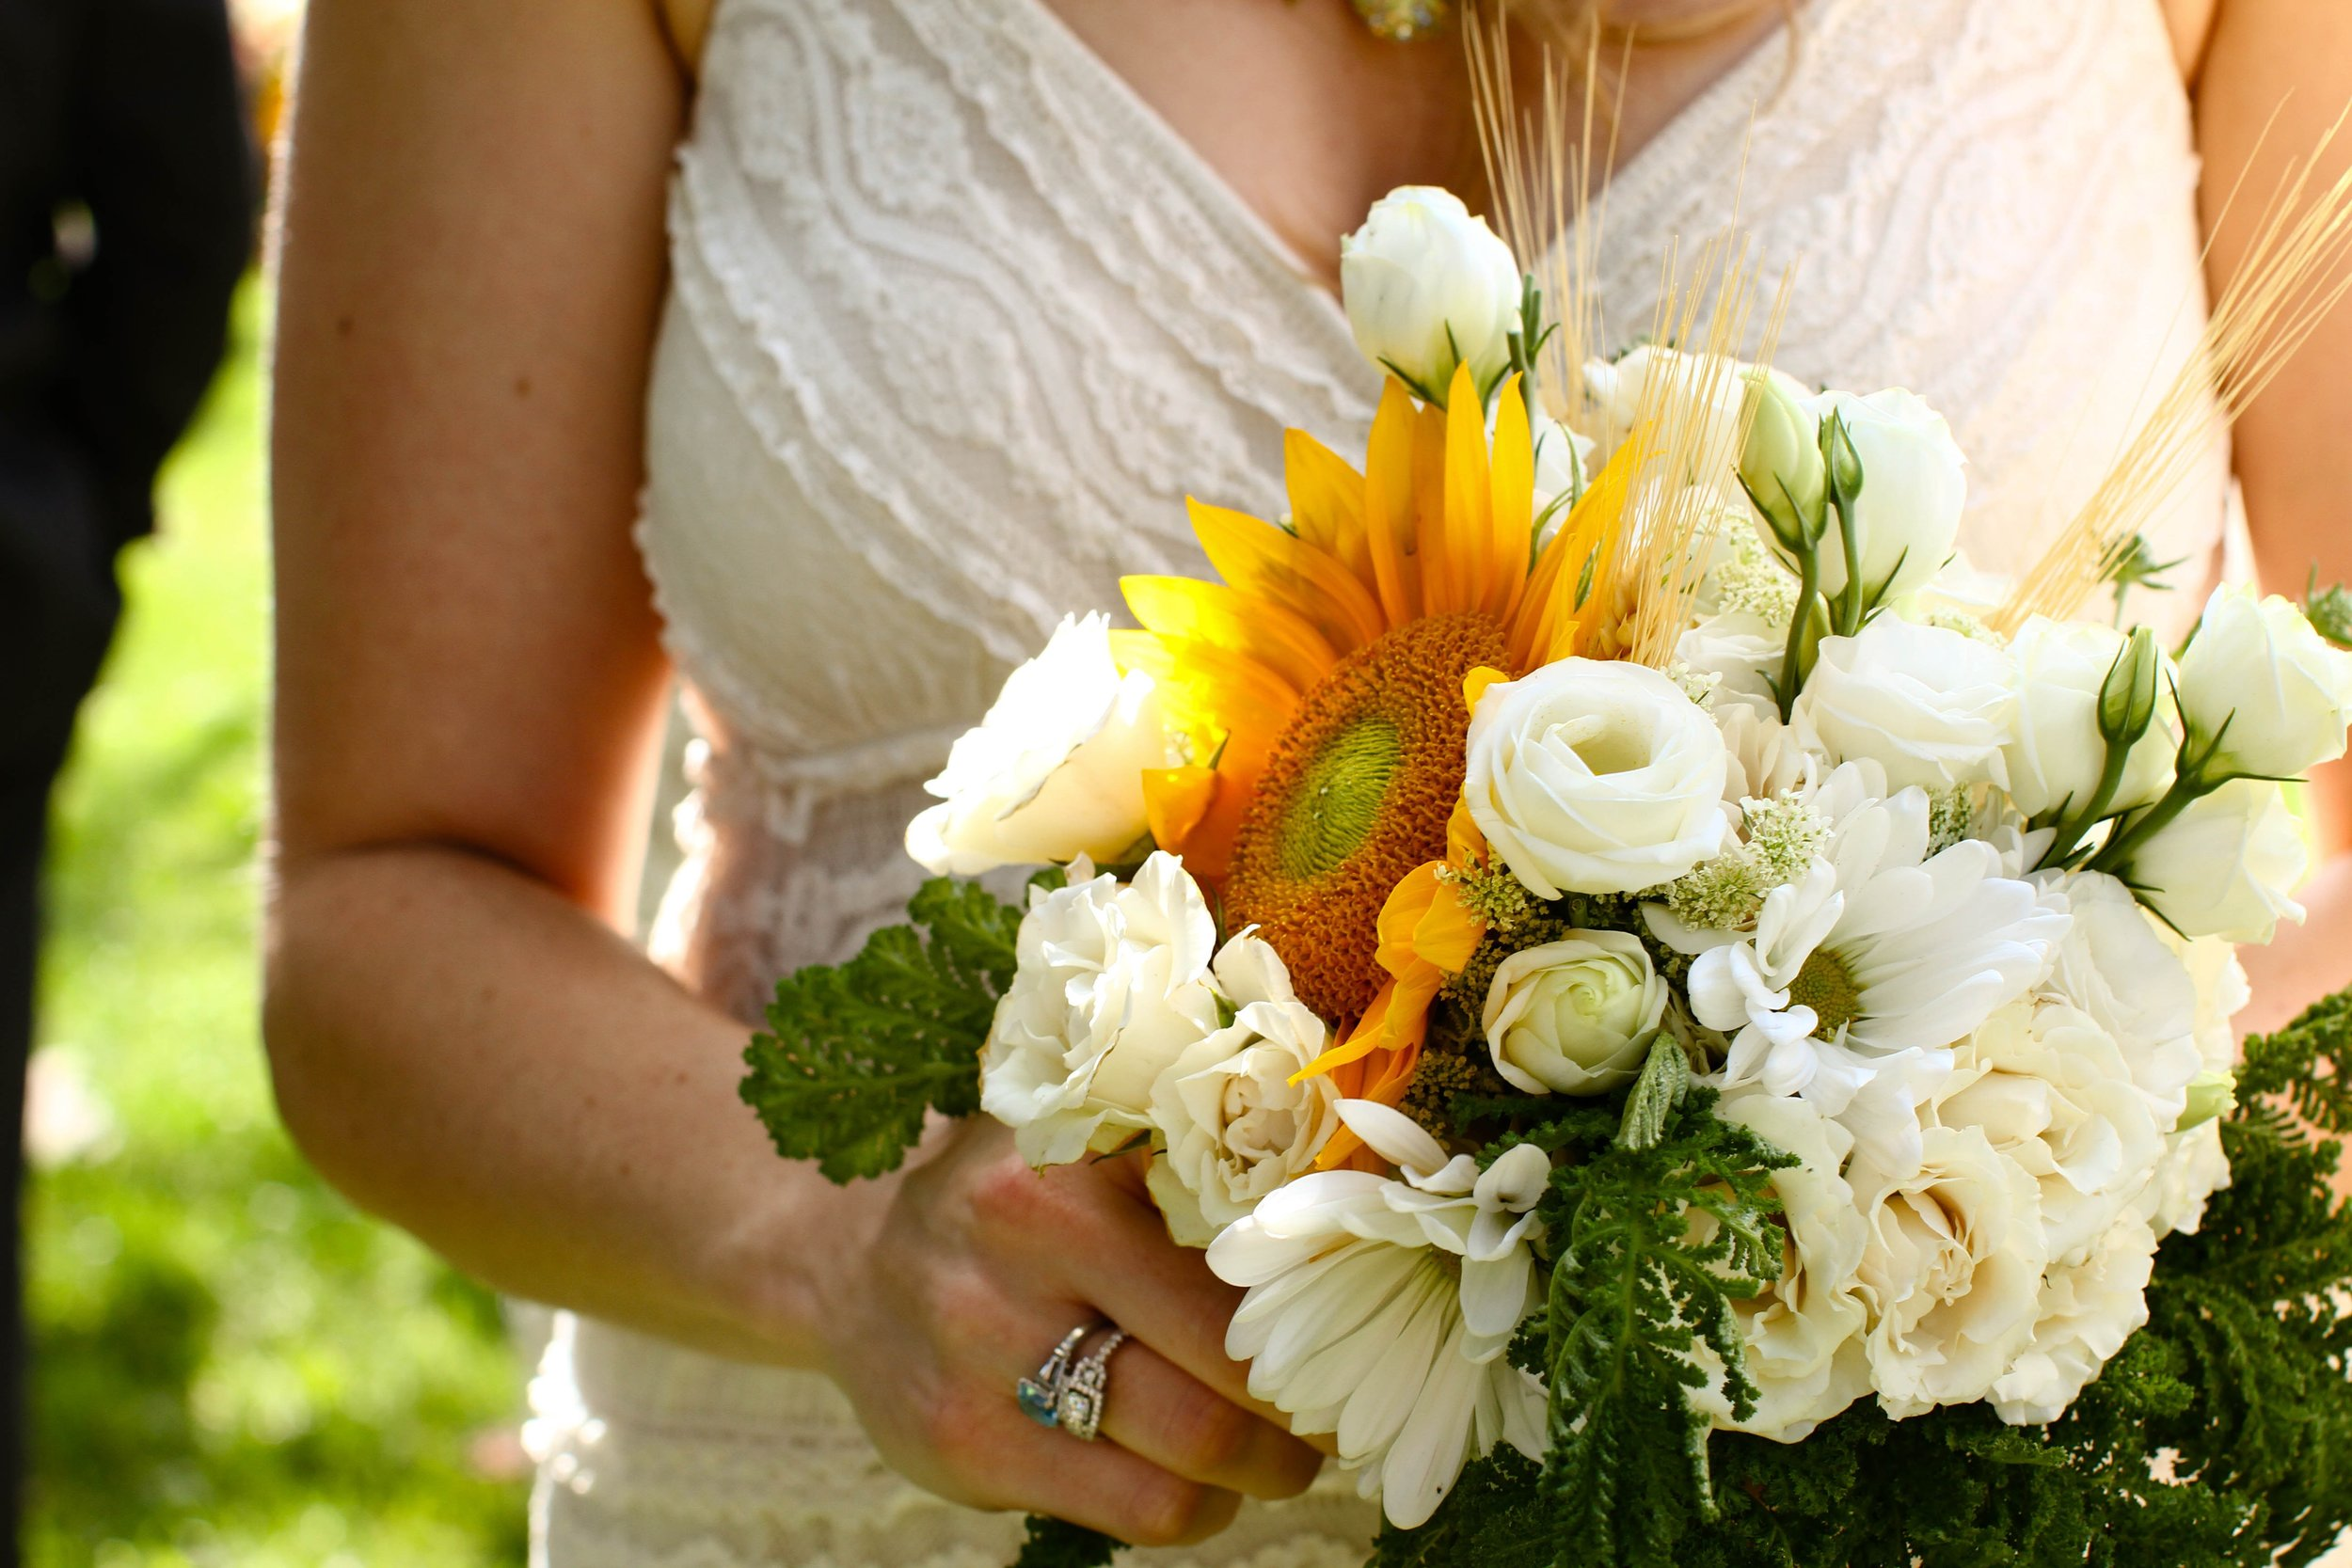 My own bridal bouquet! Perfection for an outdoor summer wedding in Kansas.